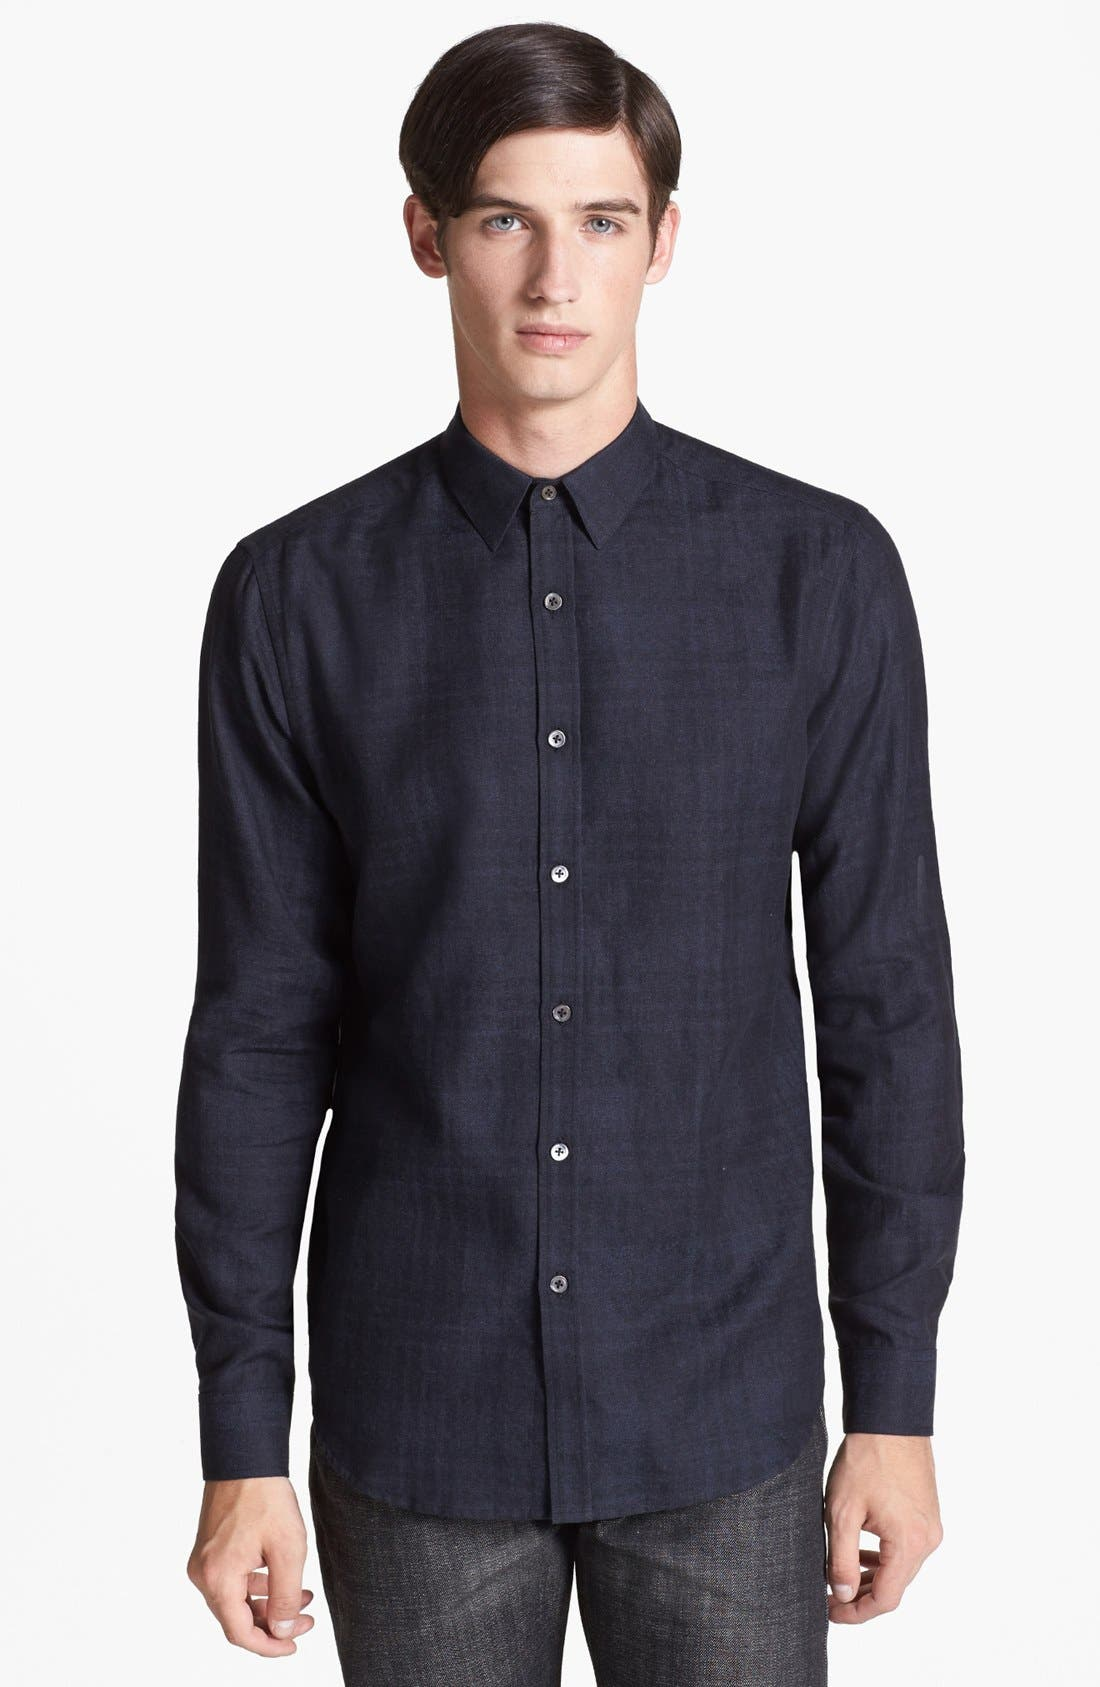 Alternate Image 1 Selected - Theory 'Zack PS Delcro' Trim Fit Sport Shirt